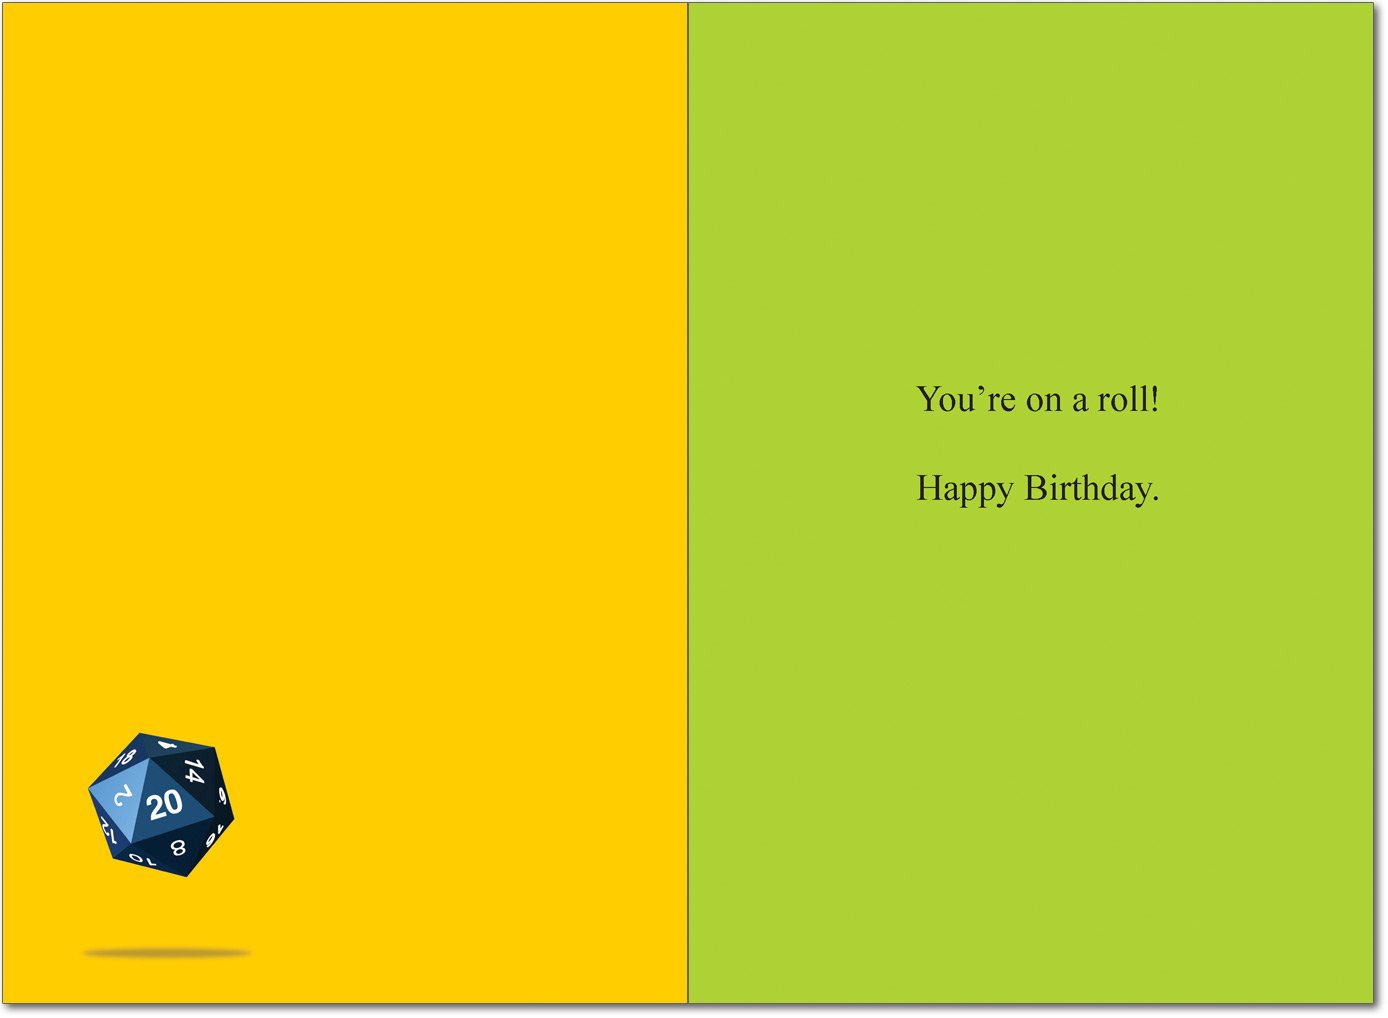 Dungeons And Dragons Birthday Humor Greeting Card Amazon Co